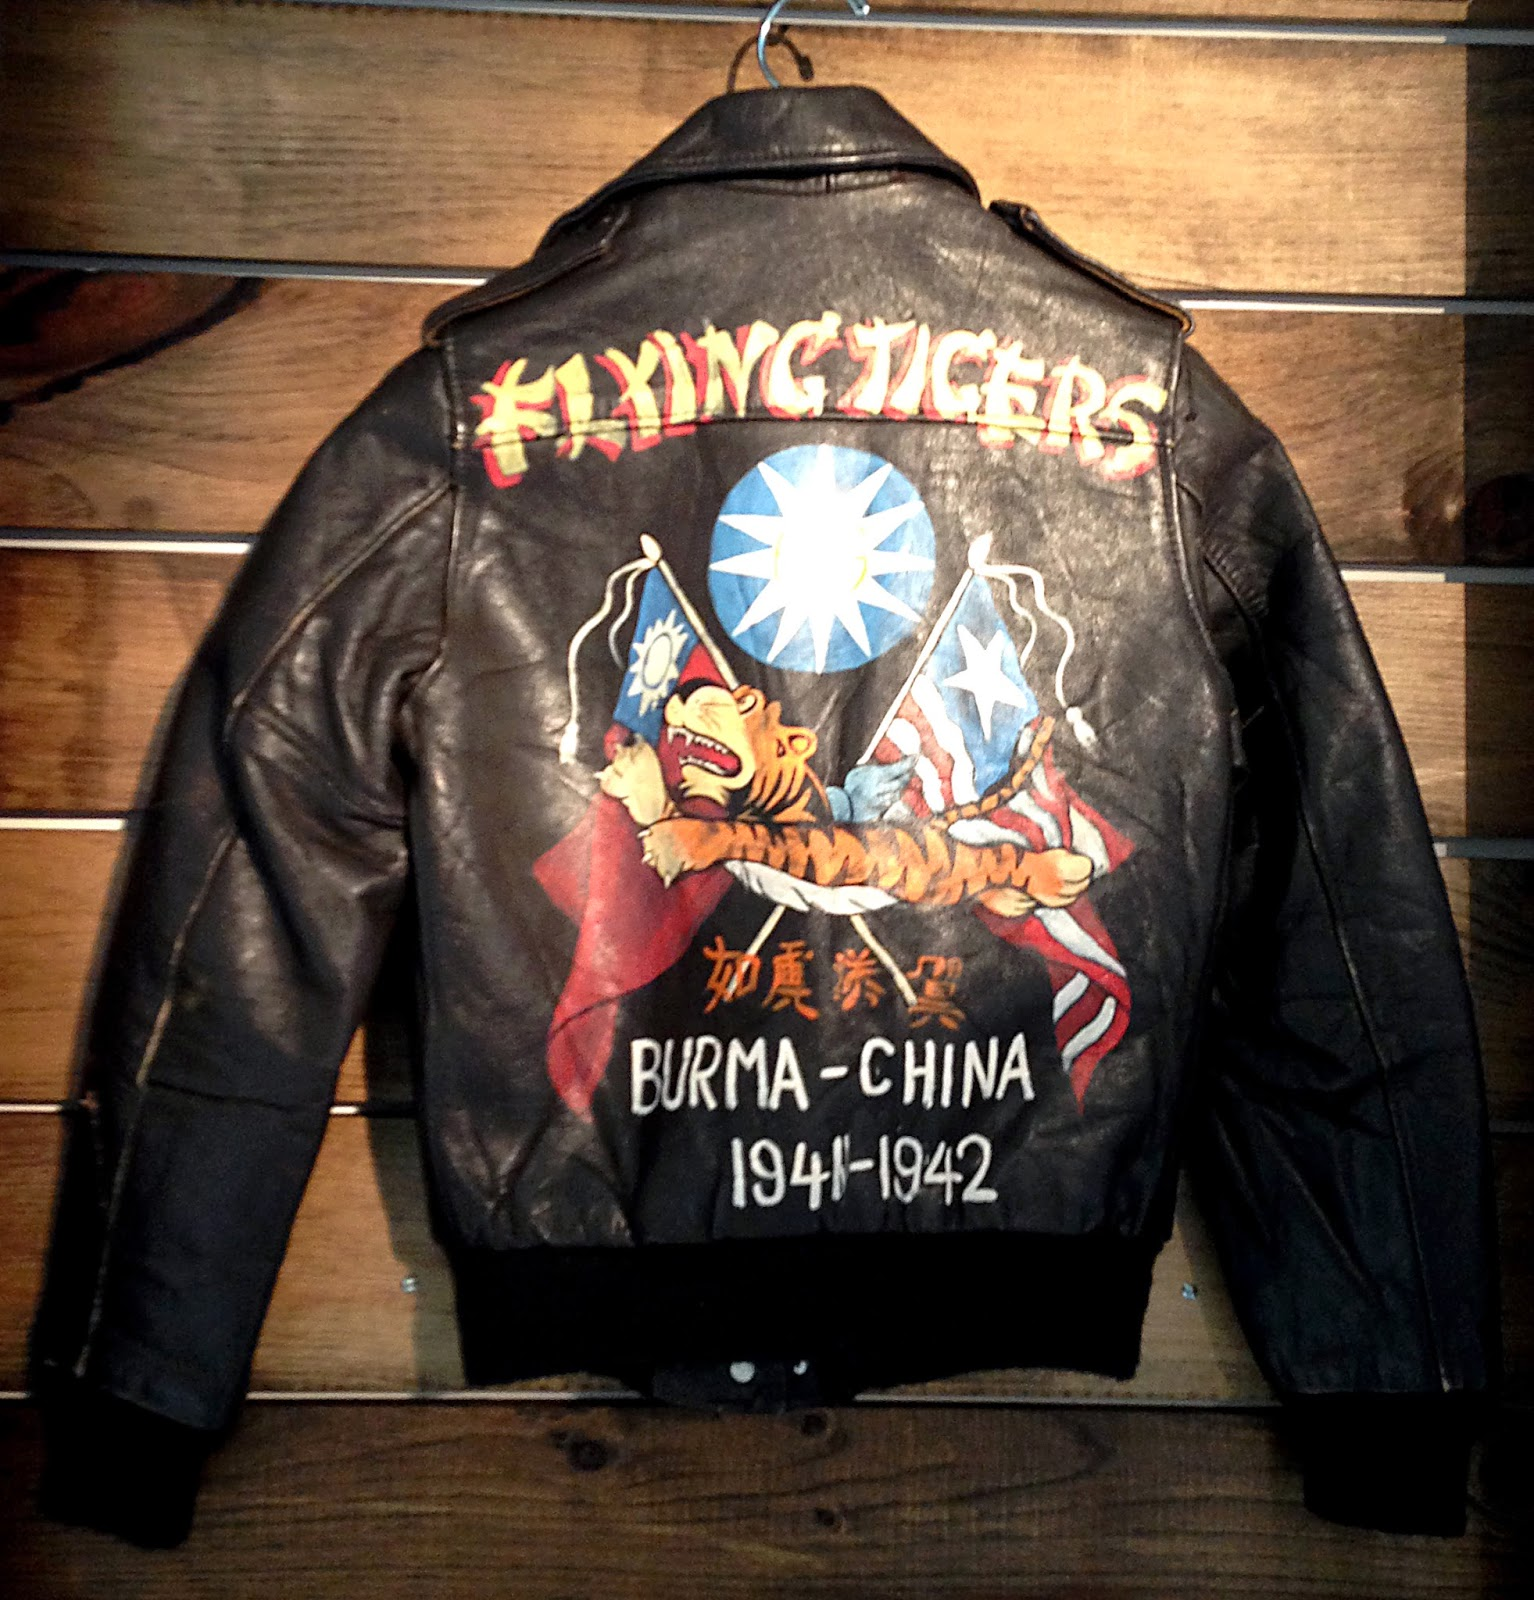 125a108daf3 Idiosyncratic Fashionistas The Eternal Appeal Of Leather Jacket. Pilot Er Jacket  Thin Military Army Flying Tigers Bomer Cool Baseball Flight